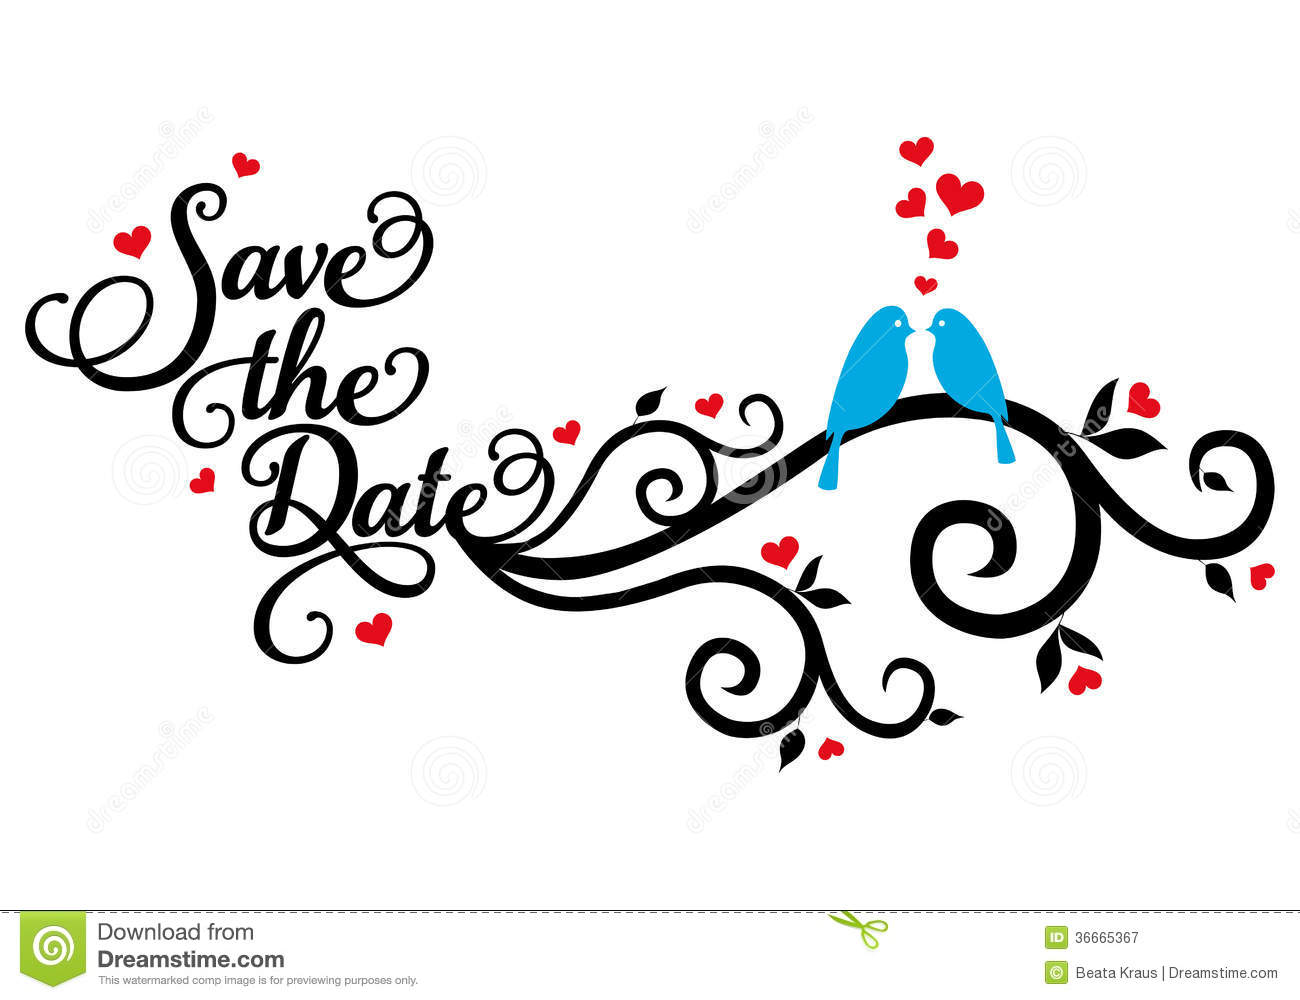 Save the date clipart 5 » Clipart Station.